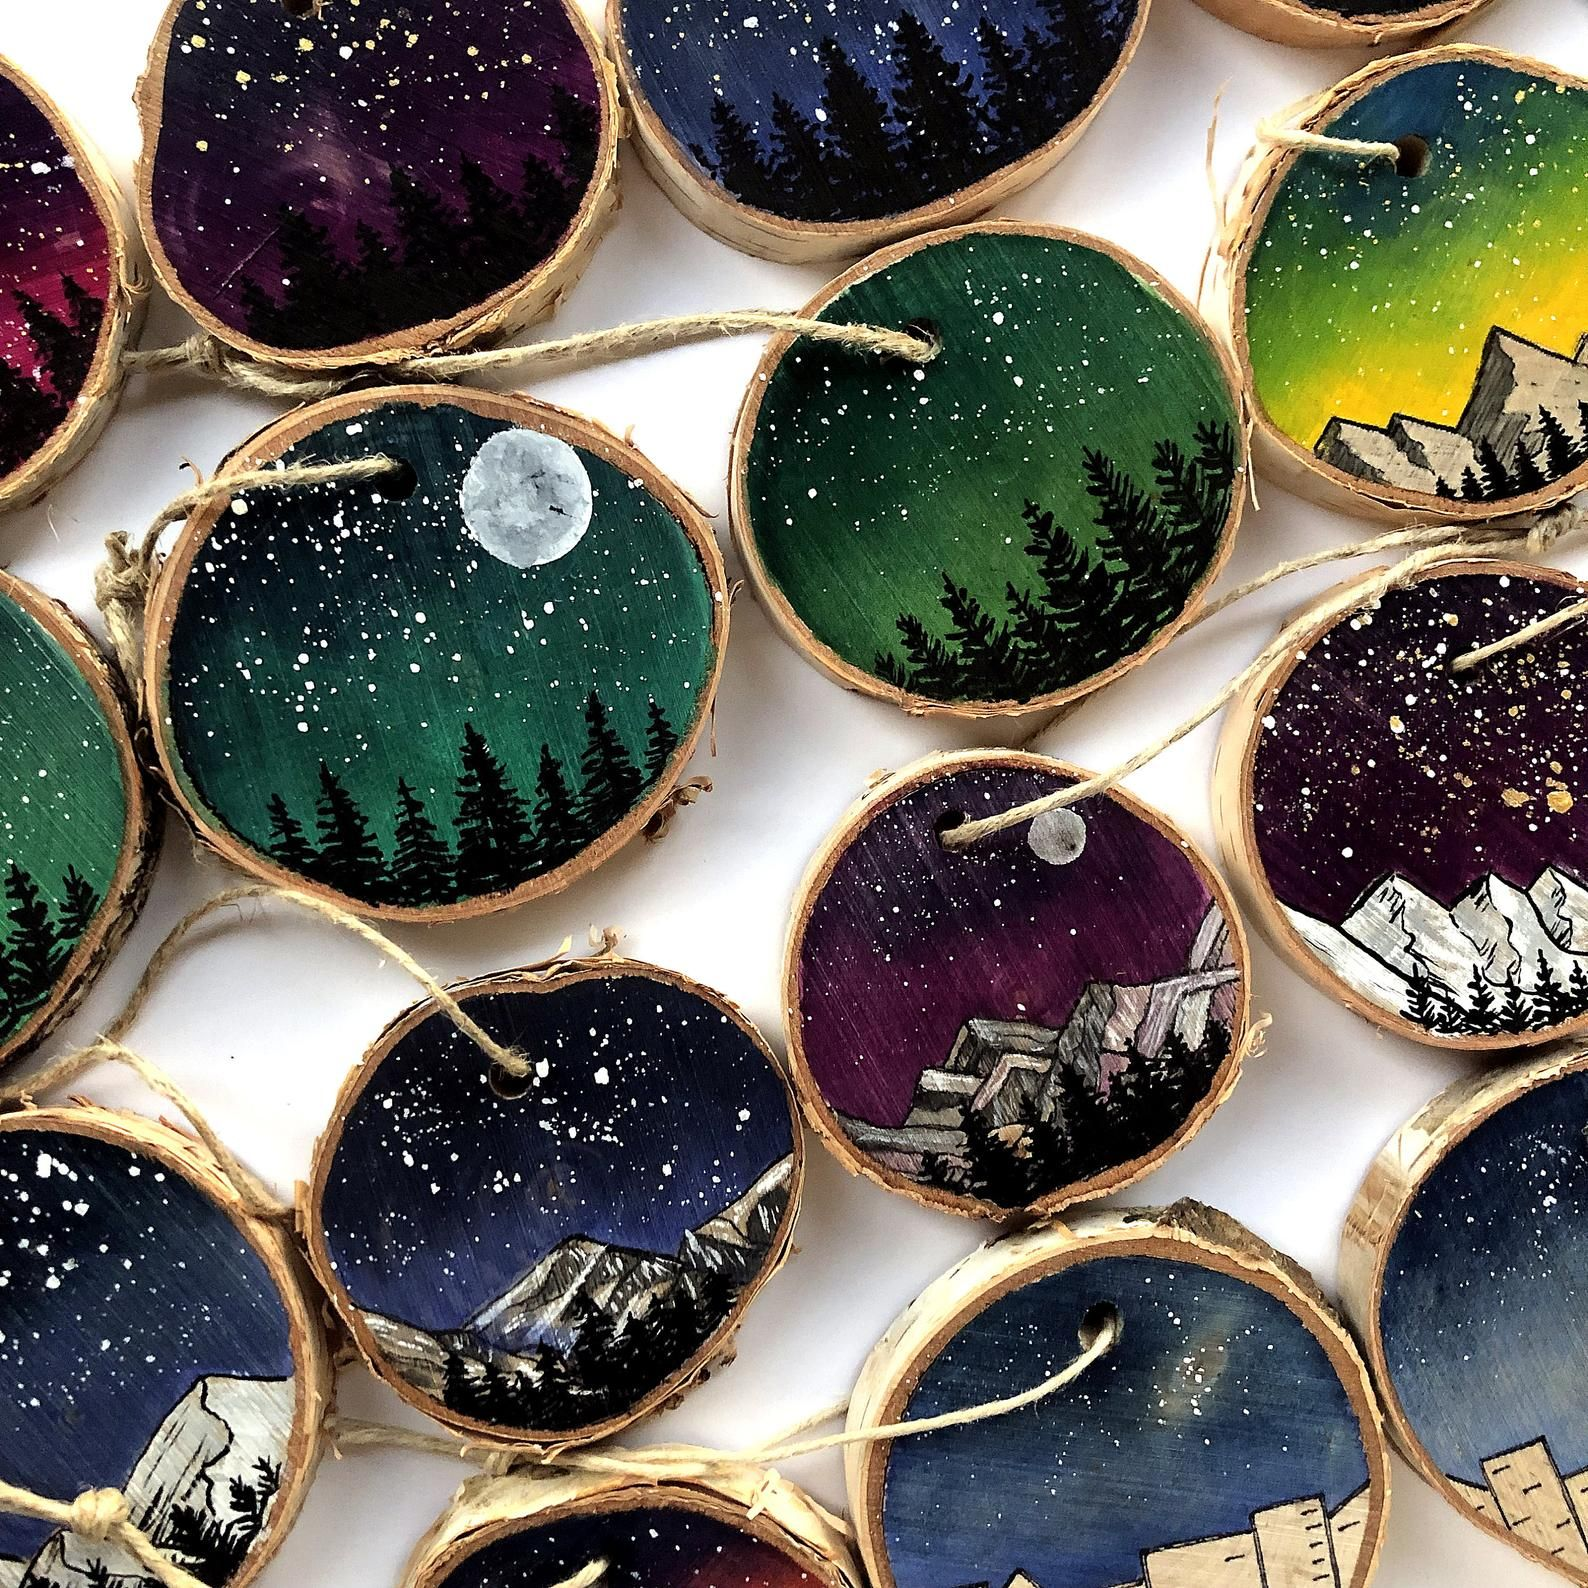 Nature Ornaments Wood Slice Ornament Christmas Ornaments Etsy In 2020 Wood Slice Ornament Wood Slices Wood Christmas Ornaments